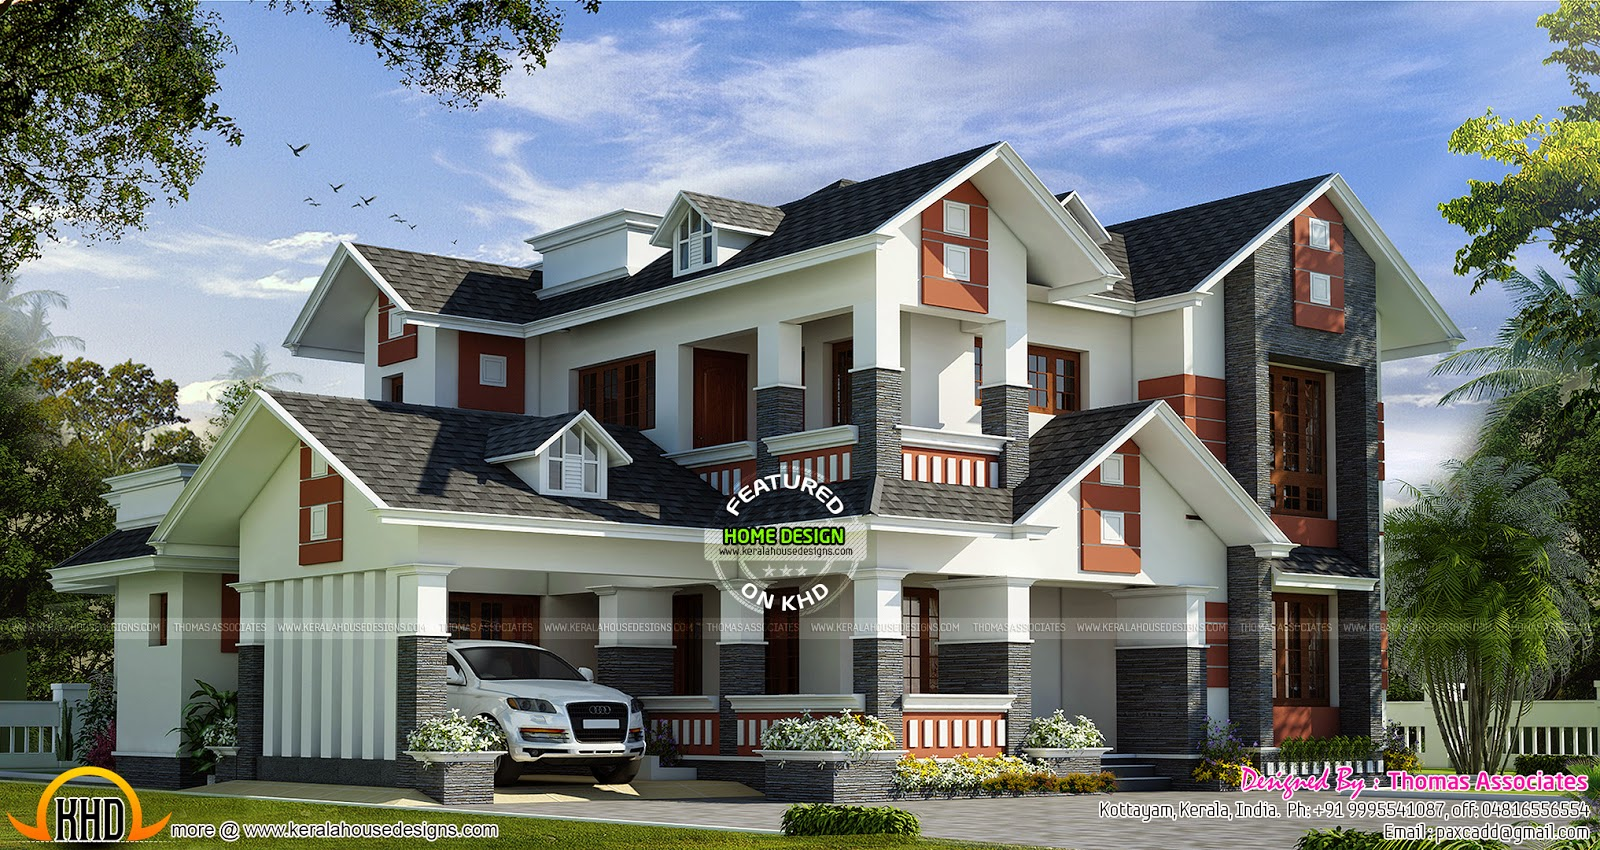 Modern Mix House With Dormer Windows Kerala Home Design